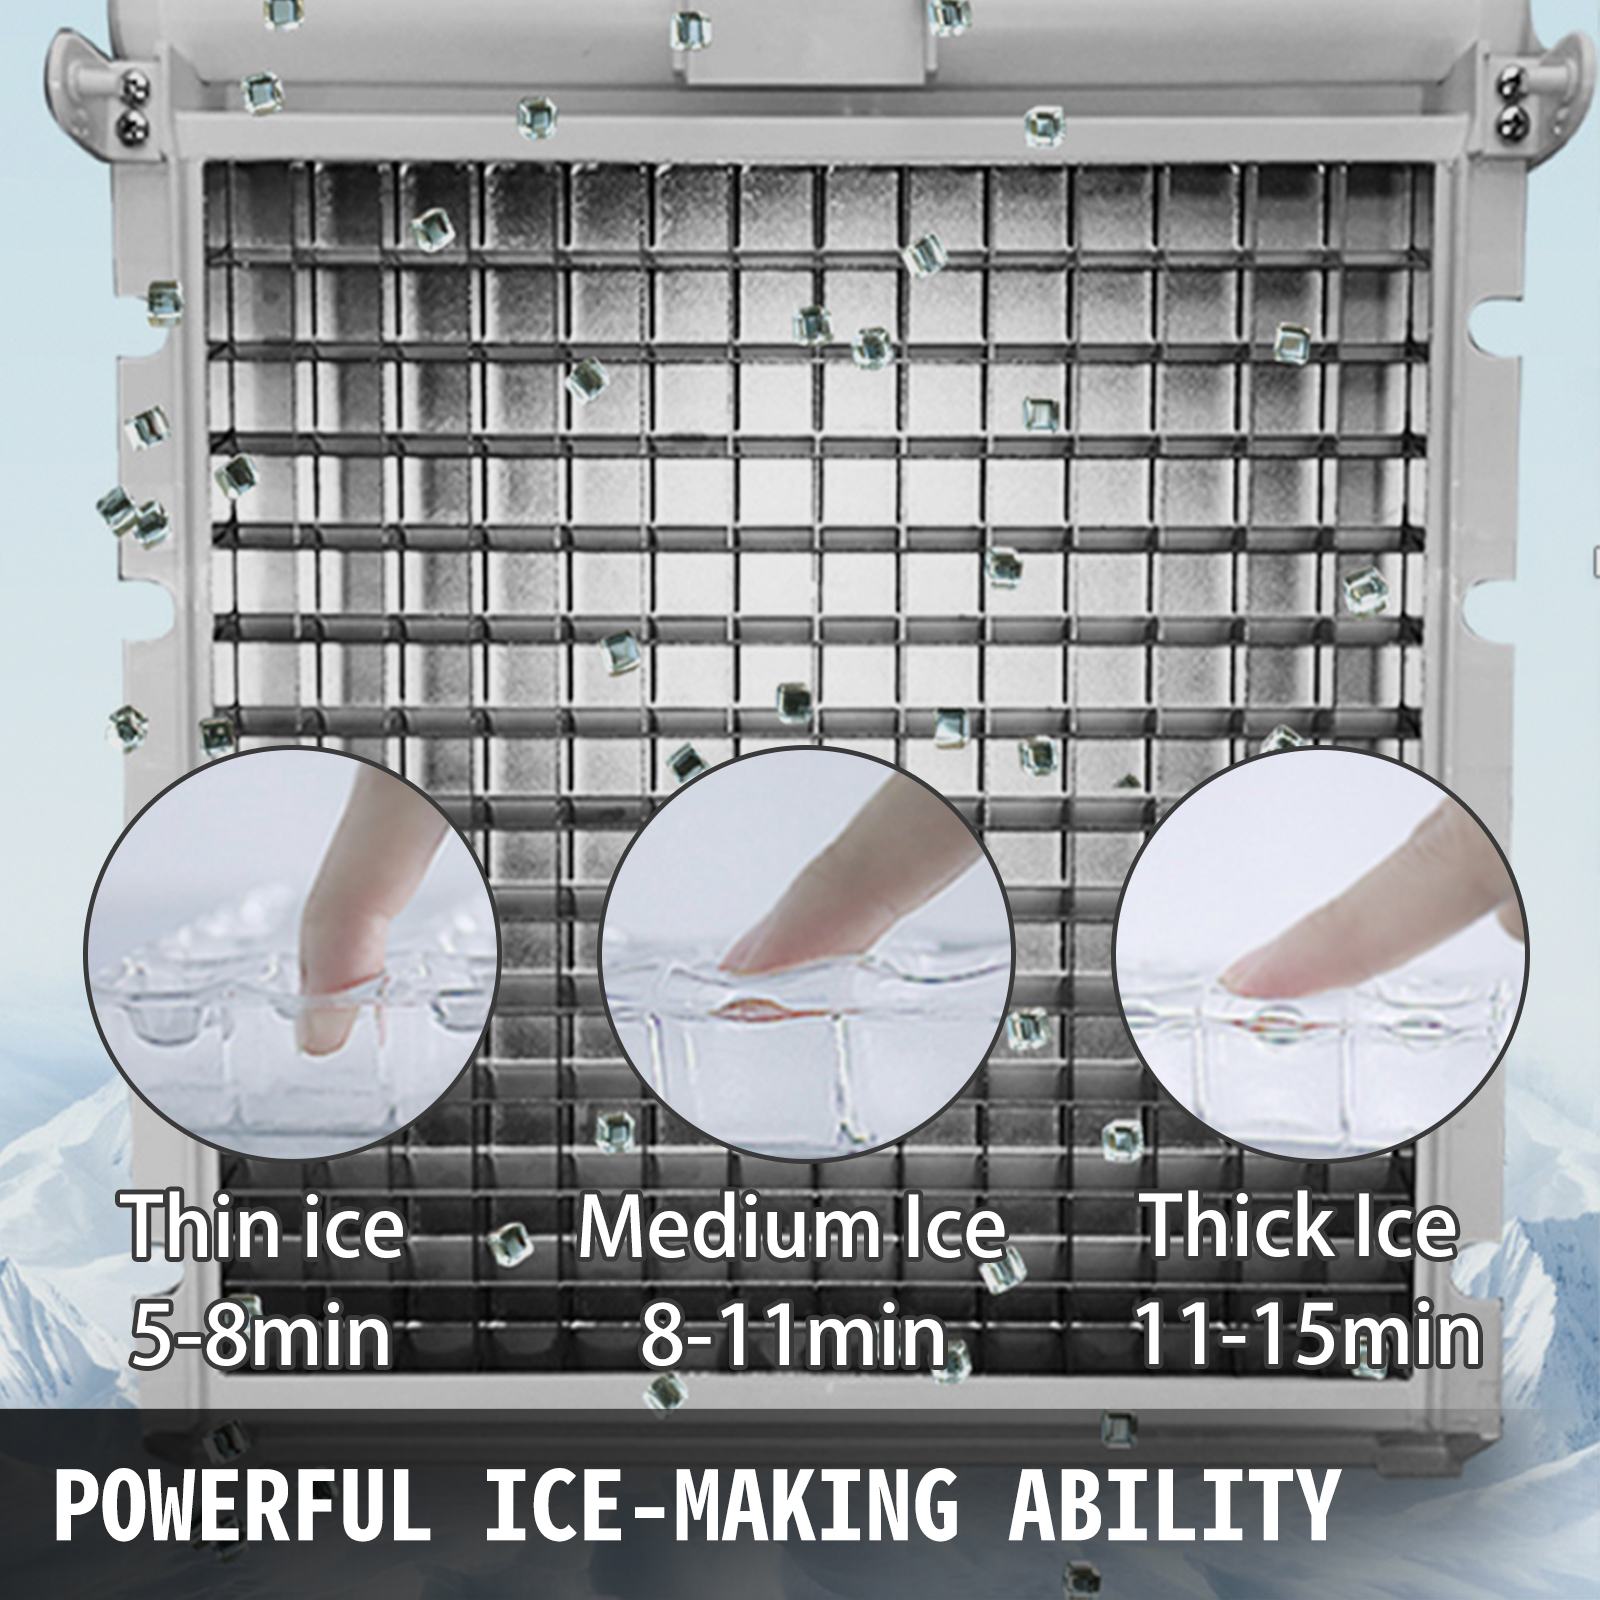 Commercial-Stainless-Steel-Ice-Maker-Ice-Machine-90-110-132-150-265-286-441-lbs thumbnail 51